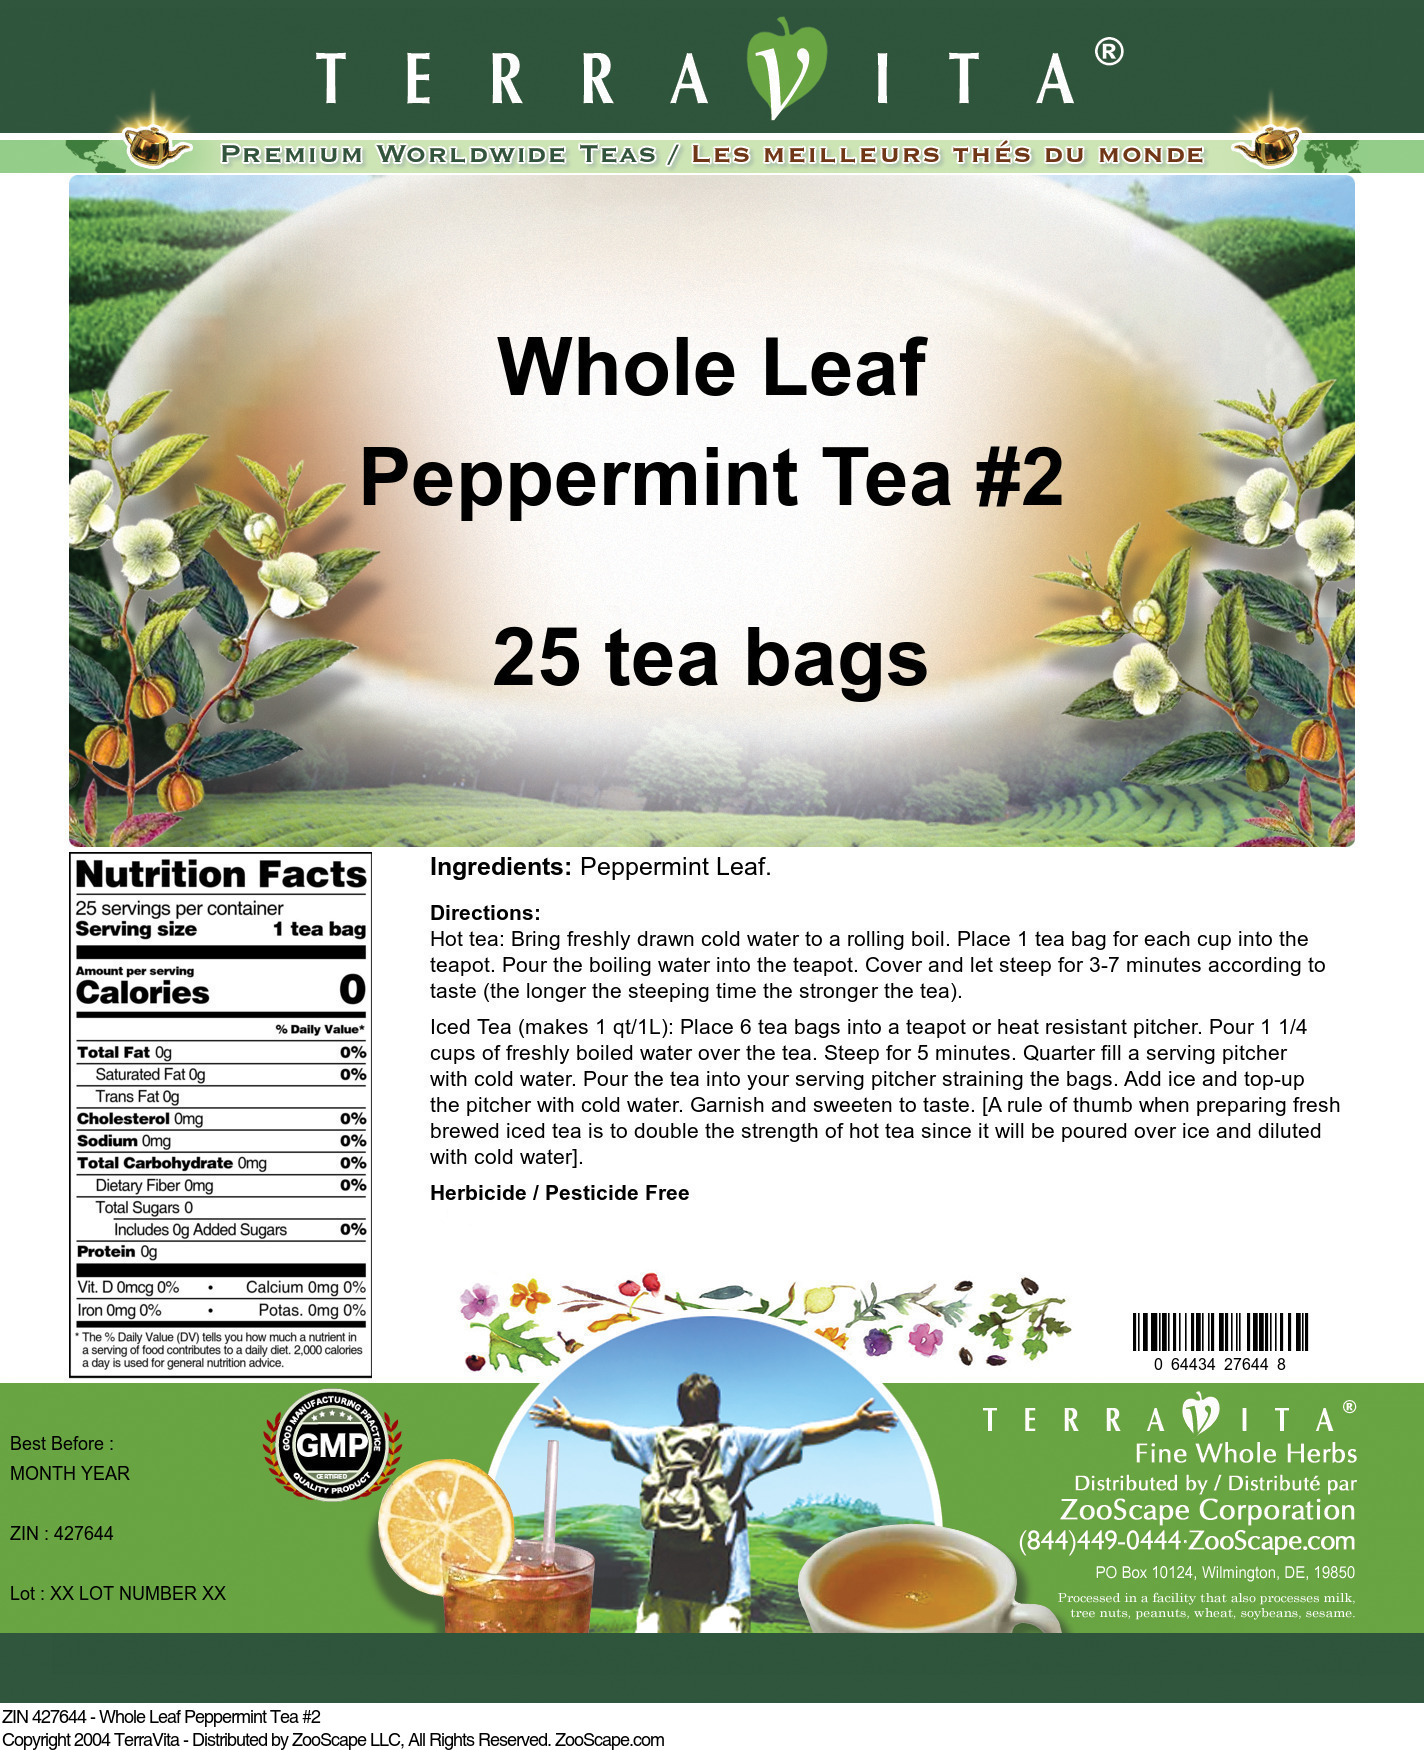 Whole Leaf Peppermint  #2